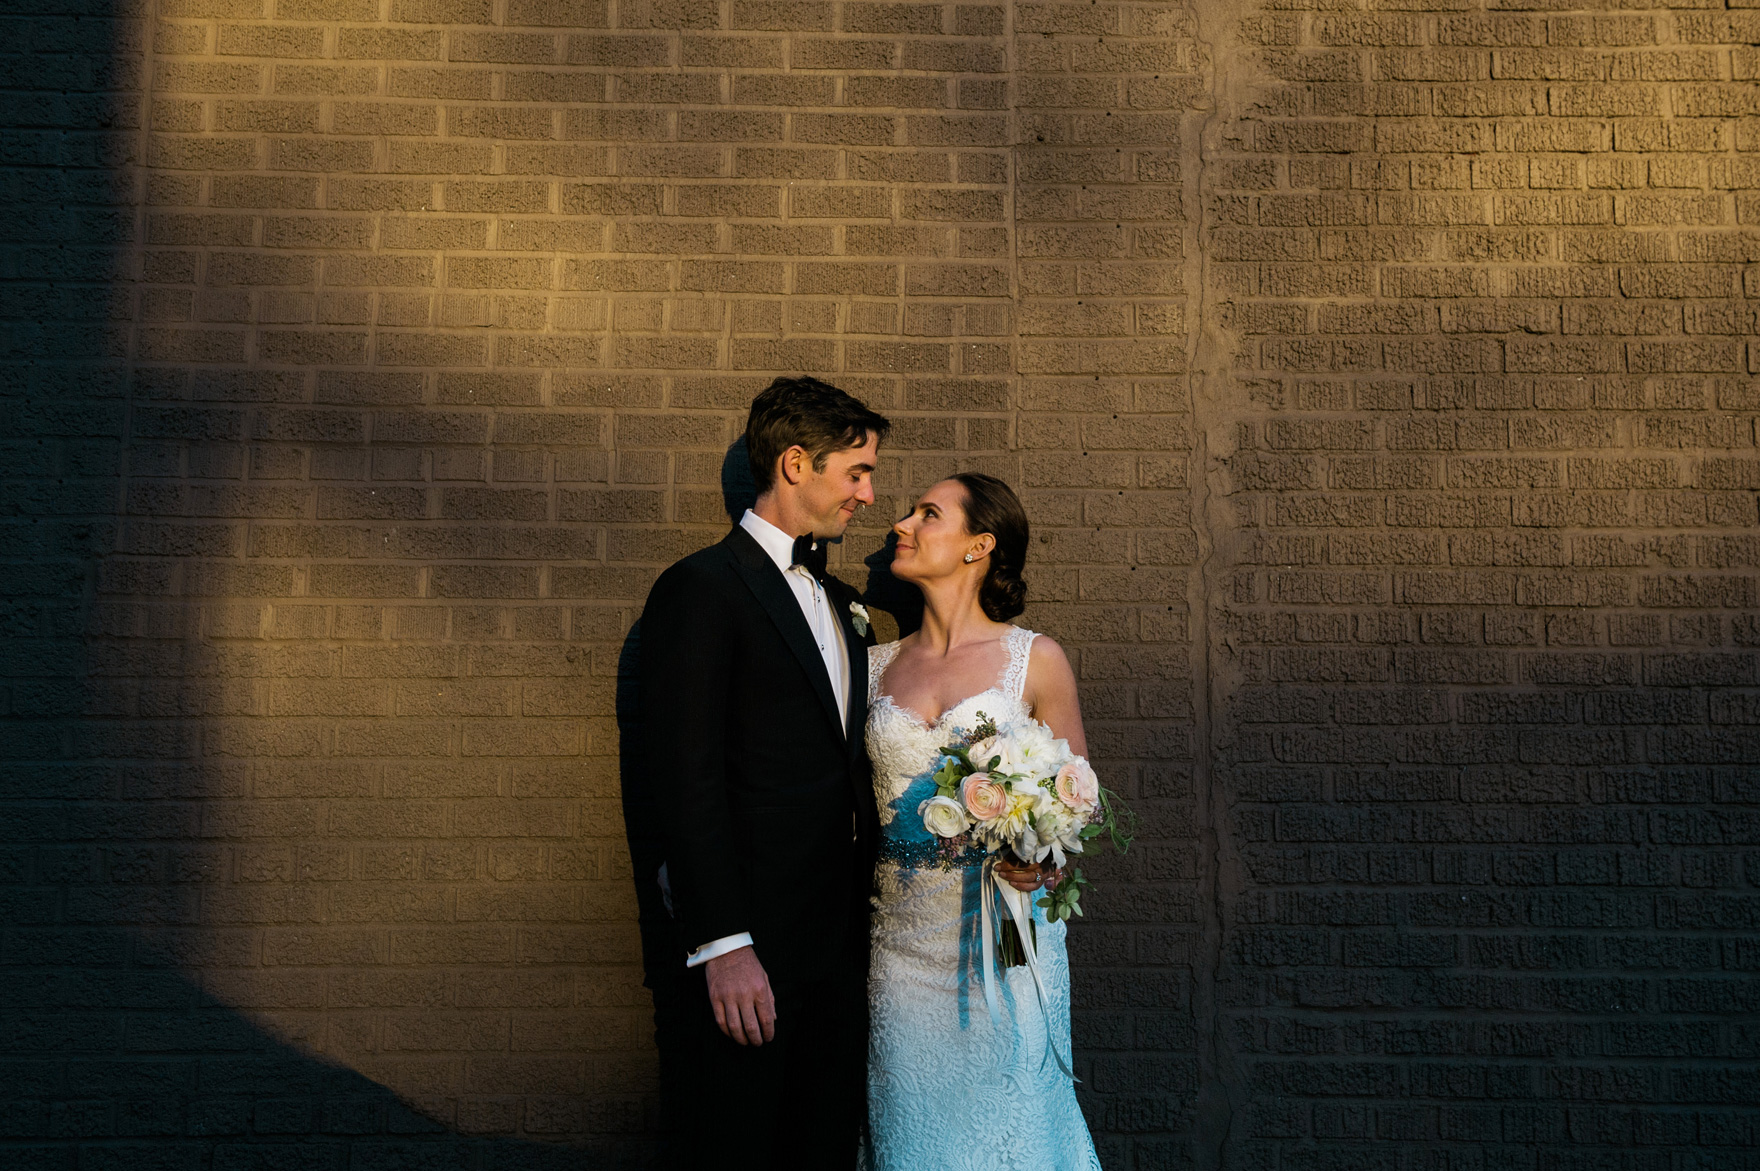 Williamsburg New York Fine Art Wedding by Christina Lilly Photography062